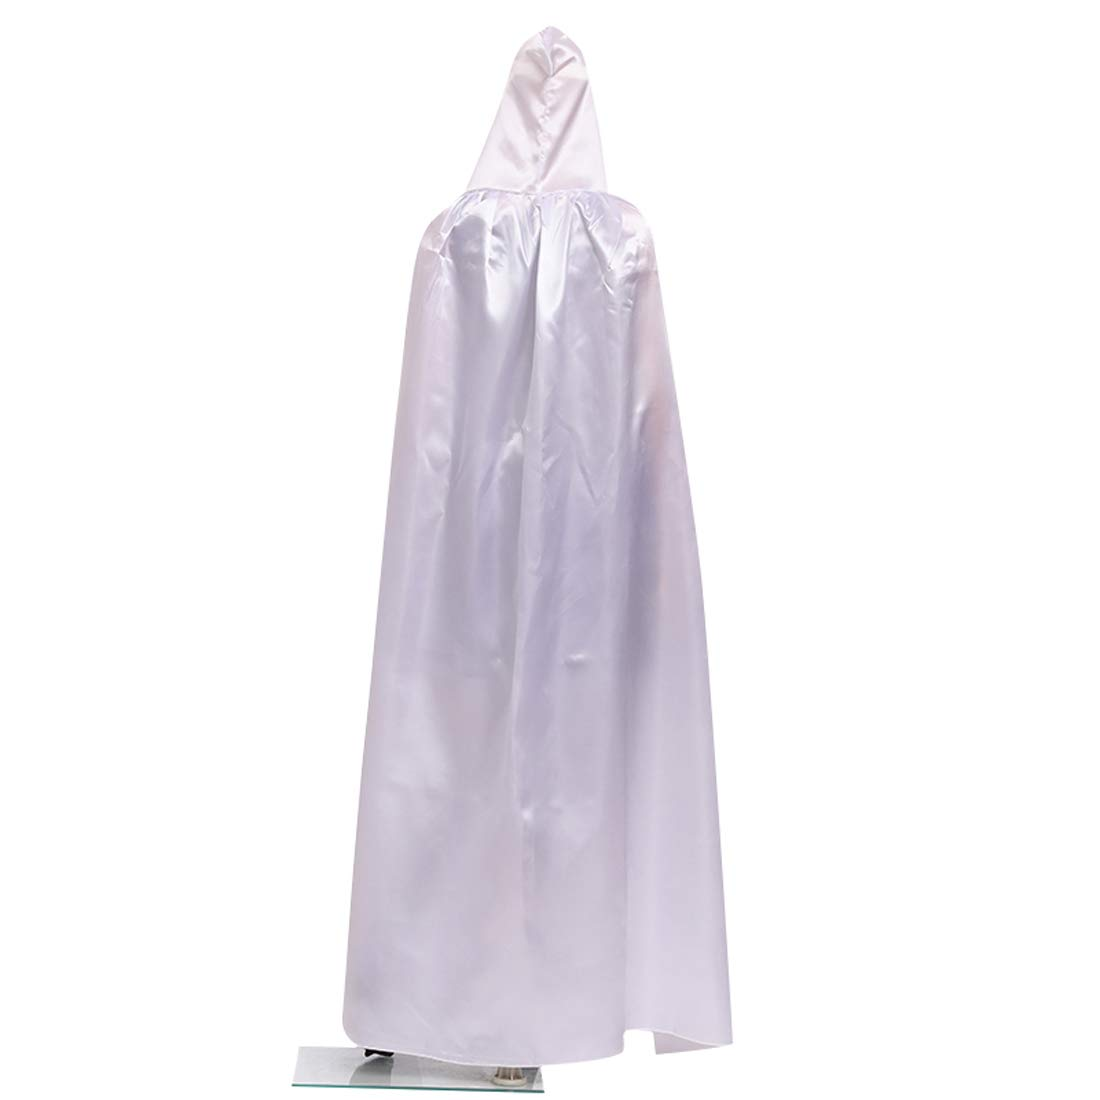 Wgior Full Length Unisex Tunic Hooded Robe Cloak Adult Halloween Costume Cosplay Capes (XL, White)